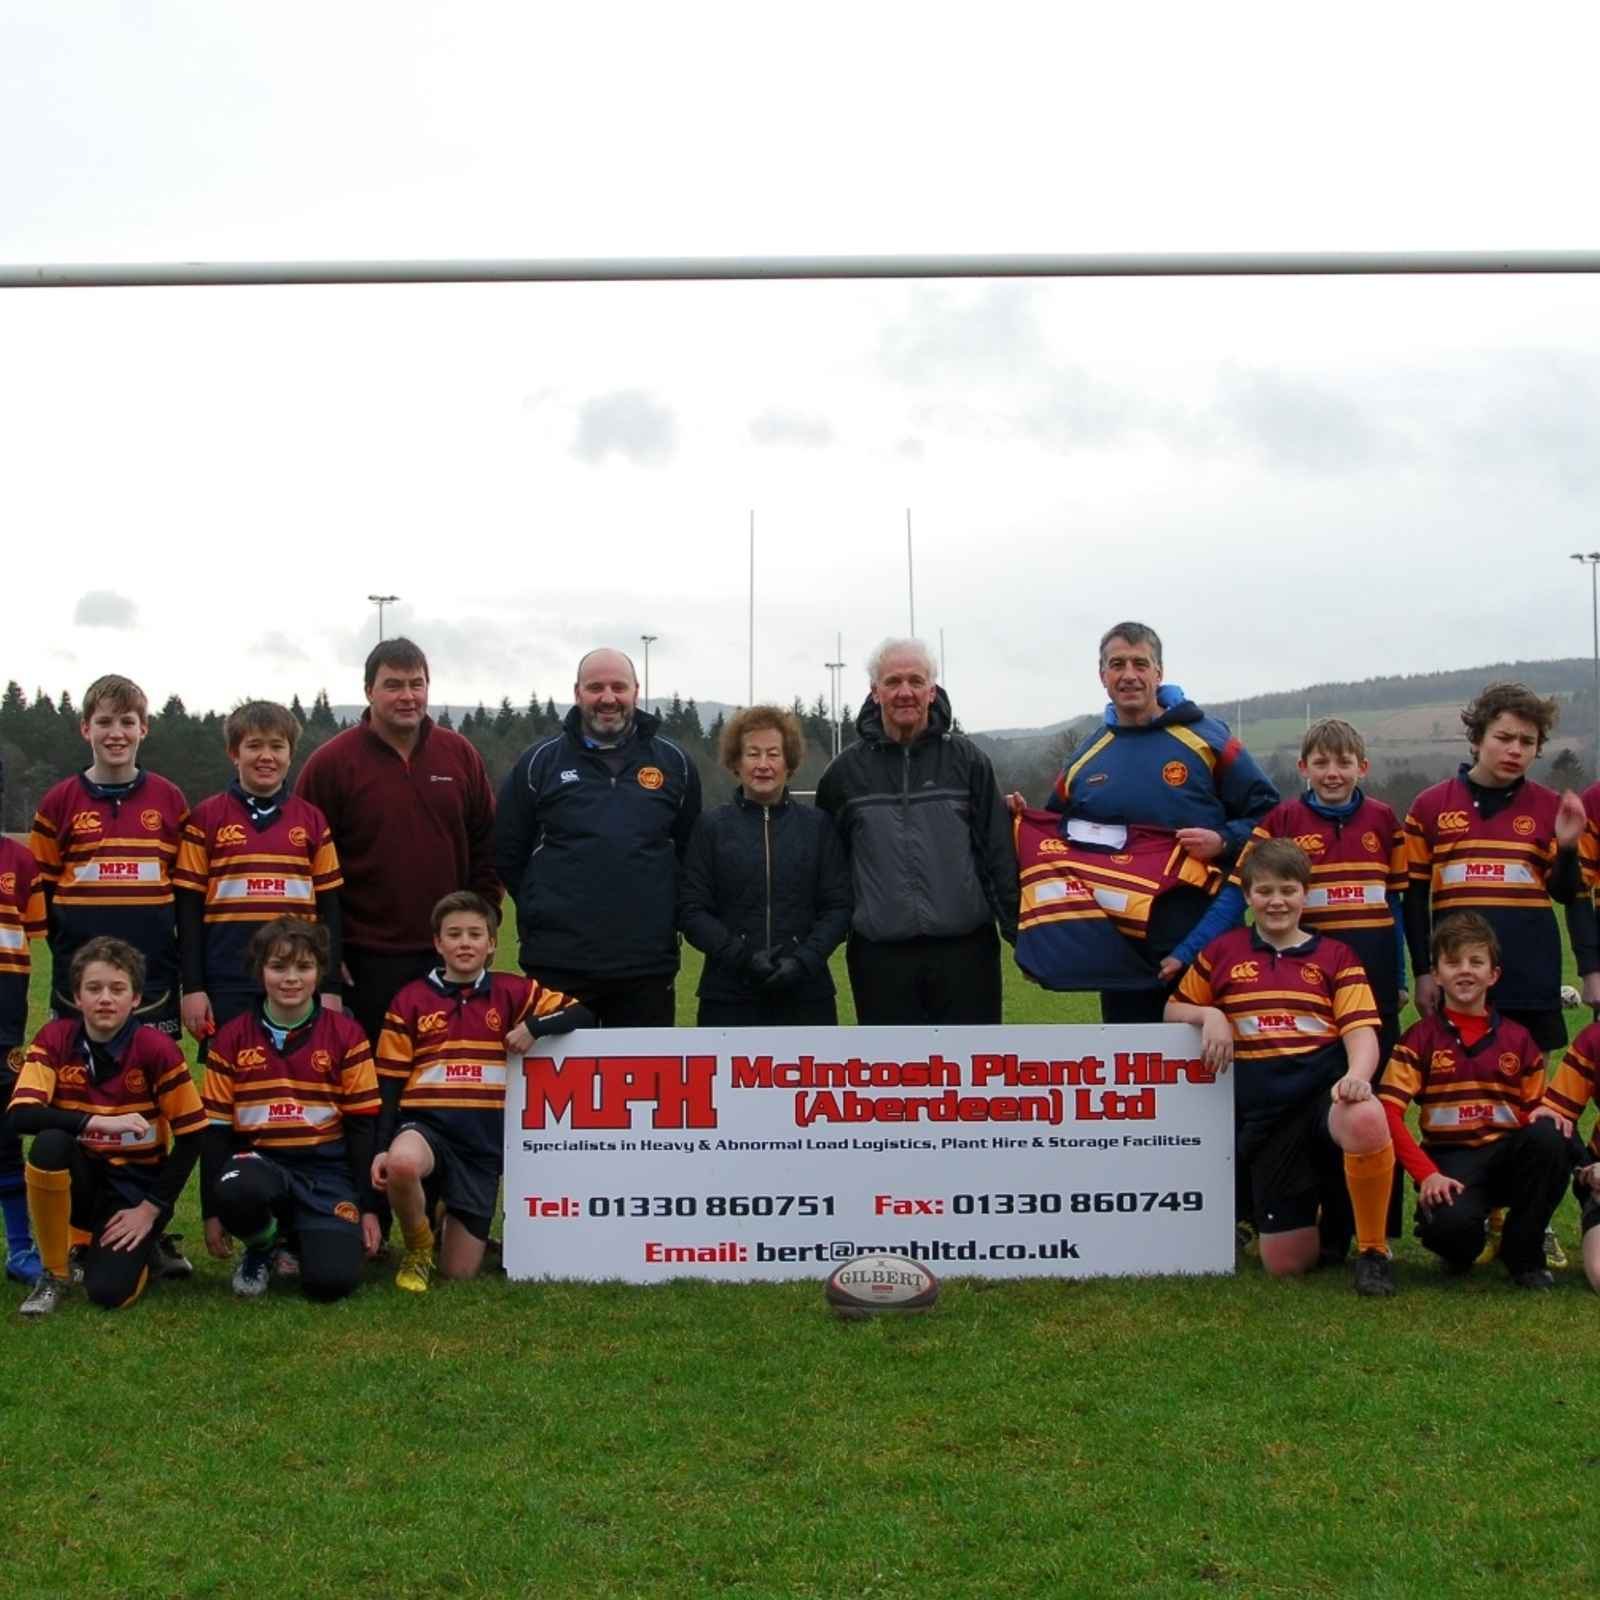 McIntosh Plant Hire donate new strips to S1/U13 team